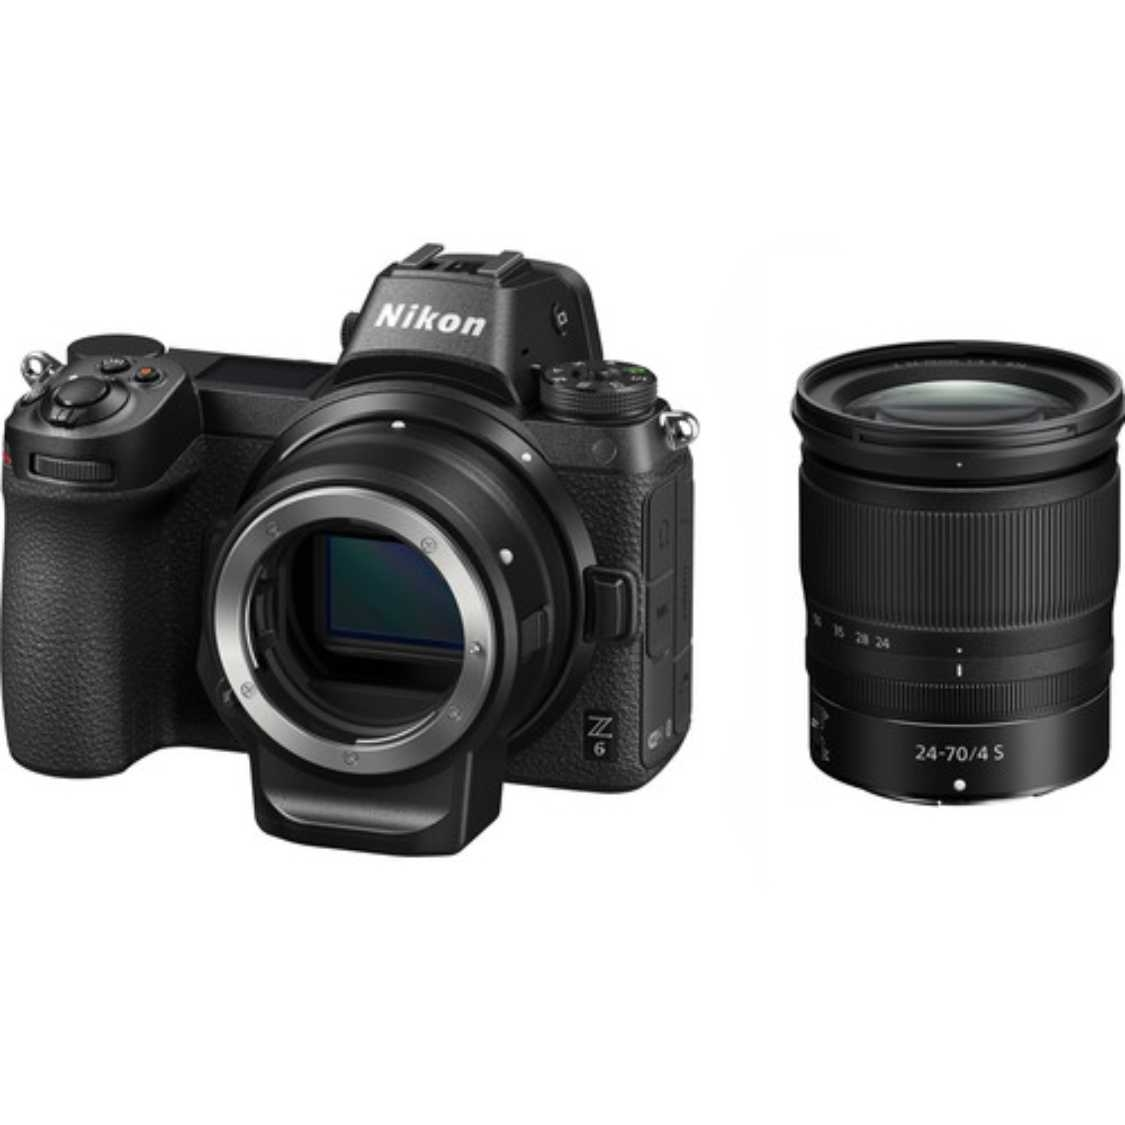 Nikon Z6 with 24-70mm f4.0 S Lens and FTZ Adapter